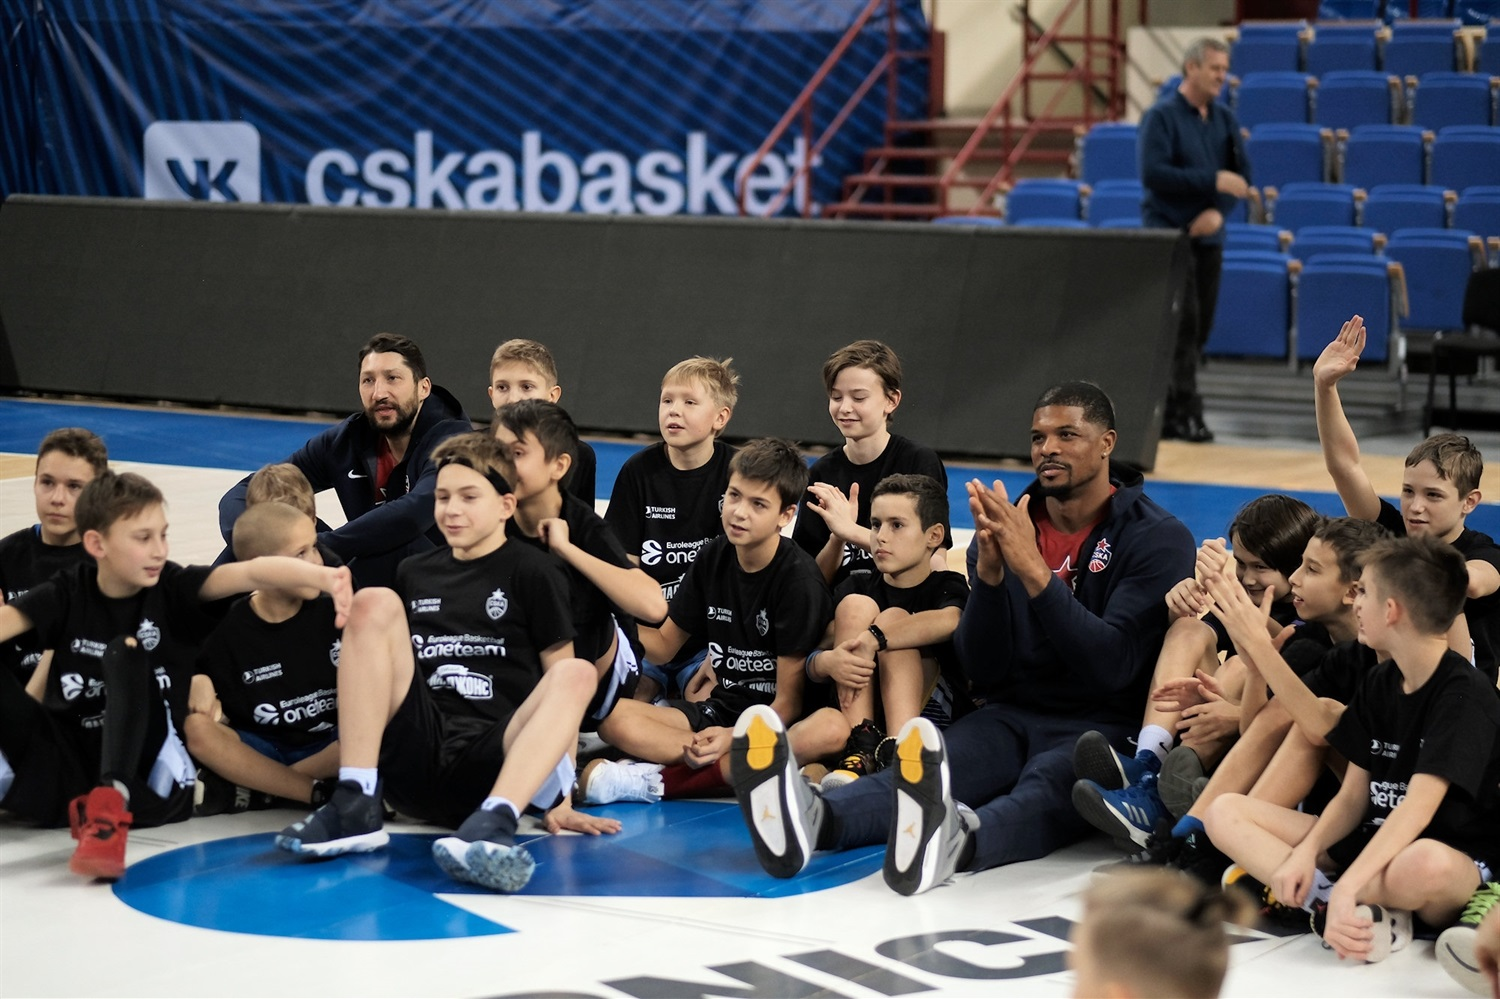 Kurbanov and Hines, One team session in Kaliningrad - CSKA Moscow - JT19